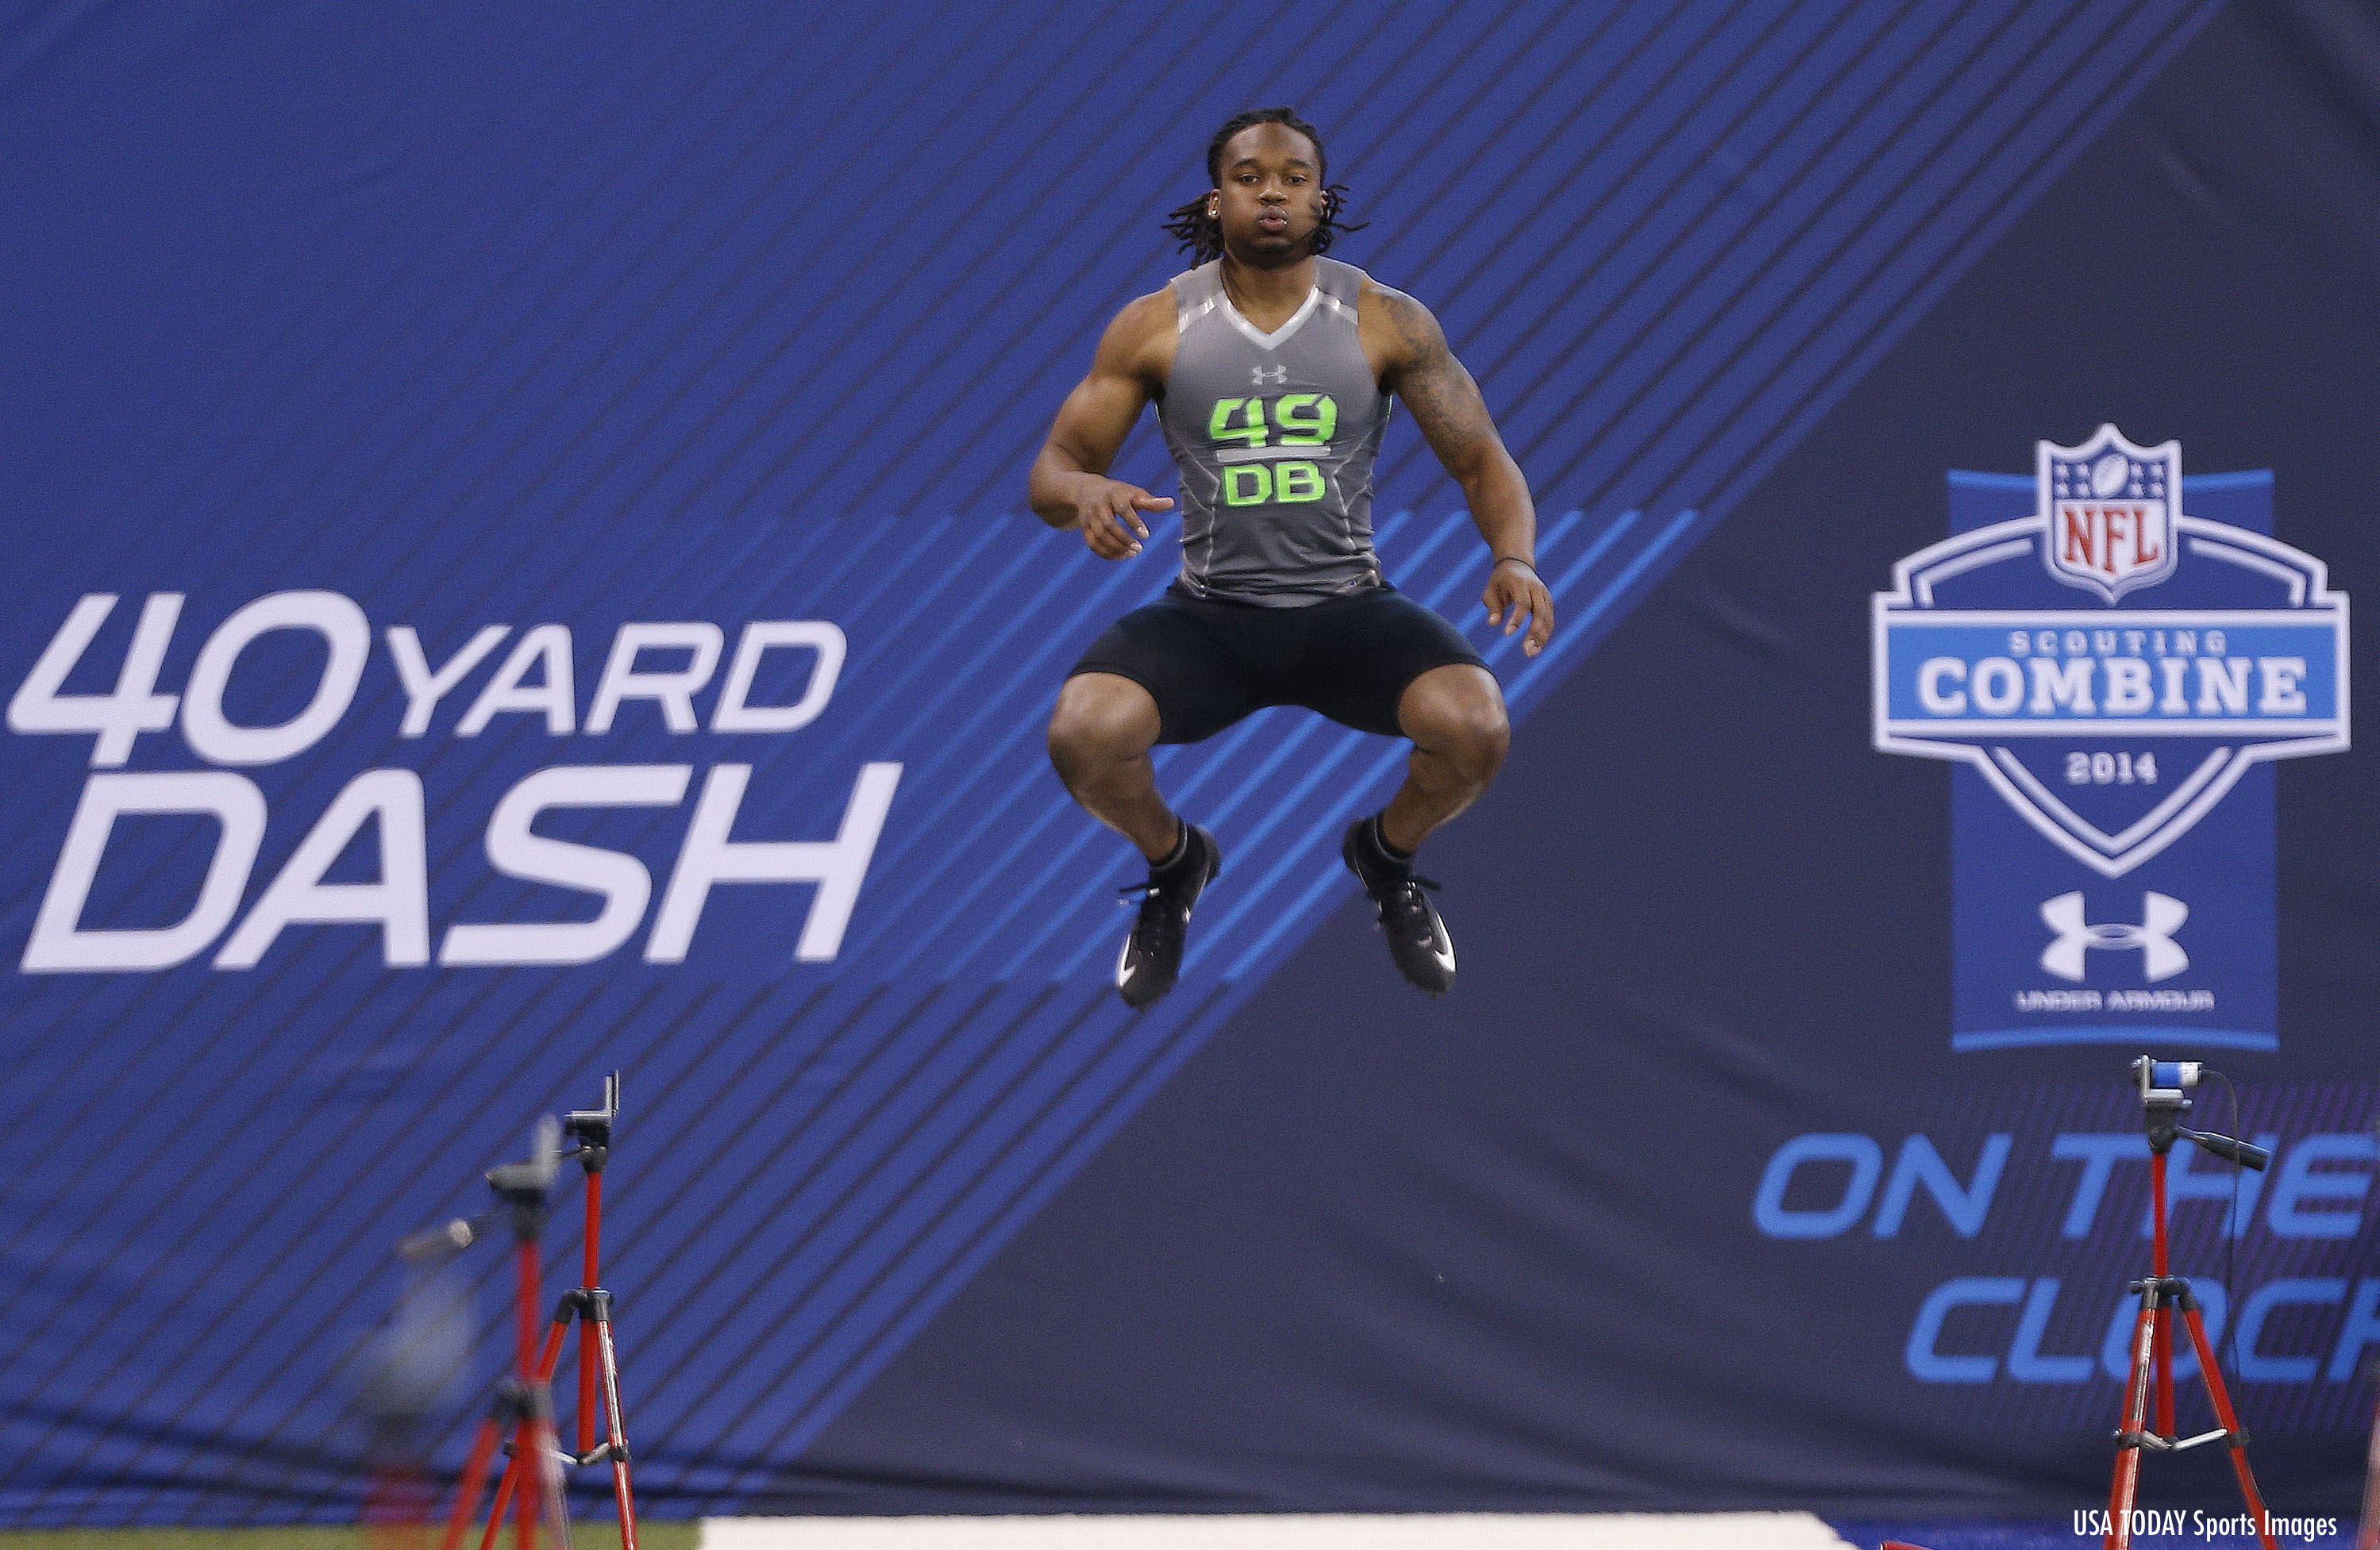 The NFL draft combine is dumb | For The Win